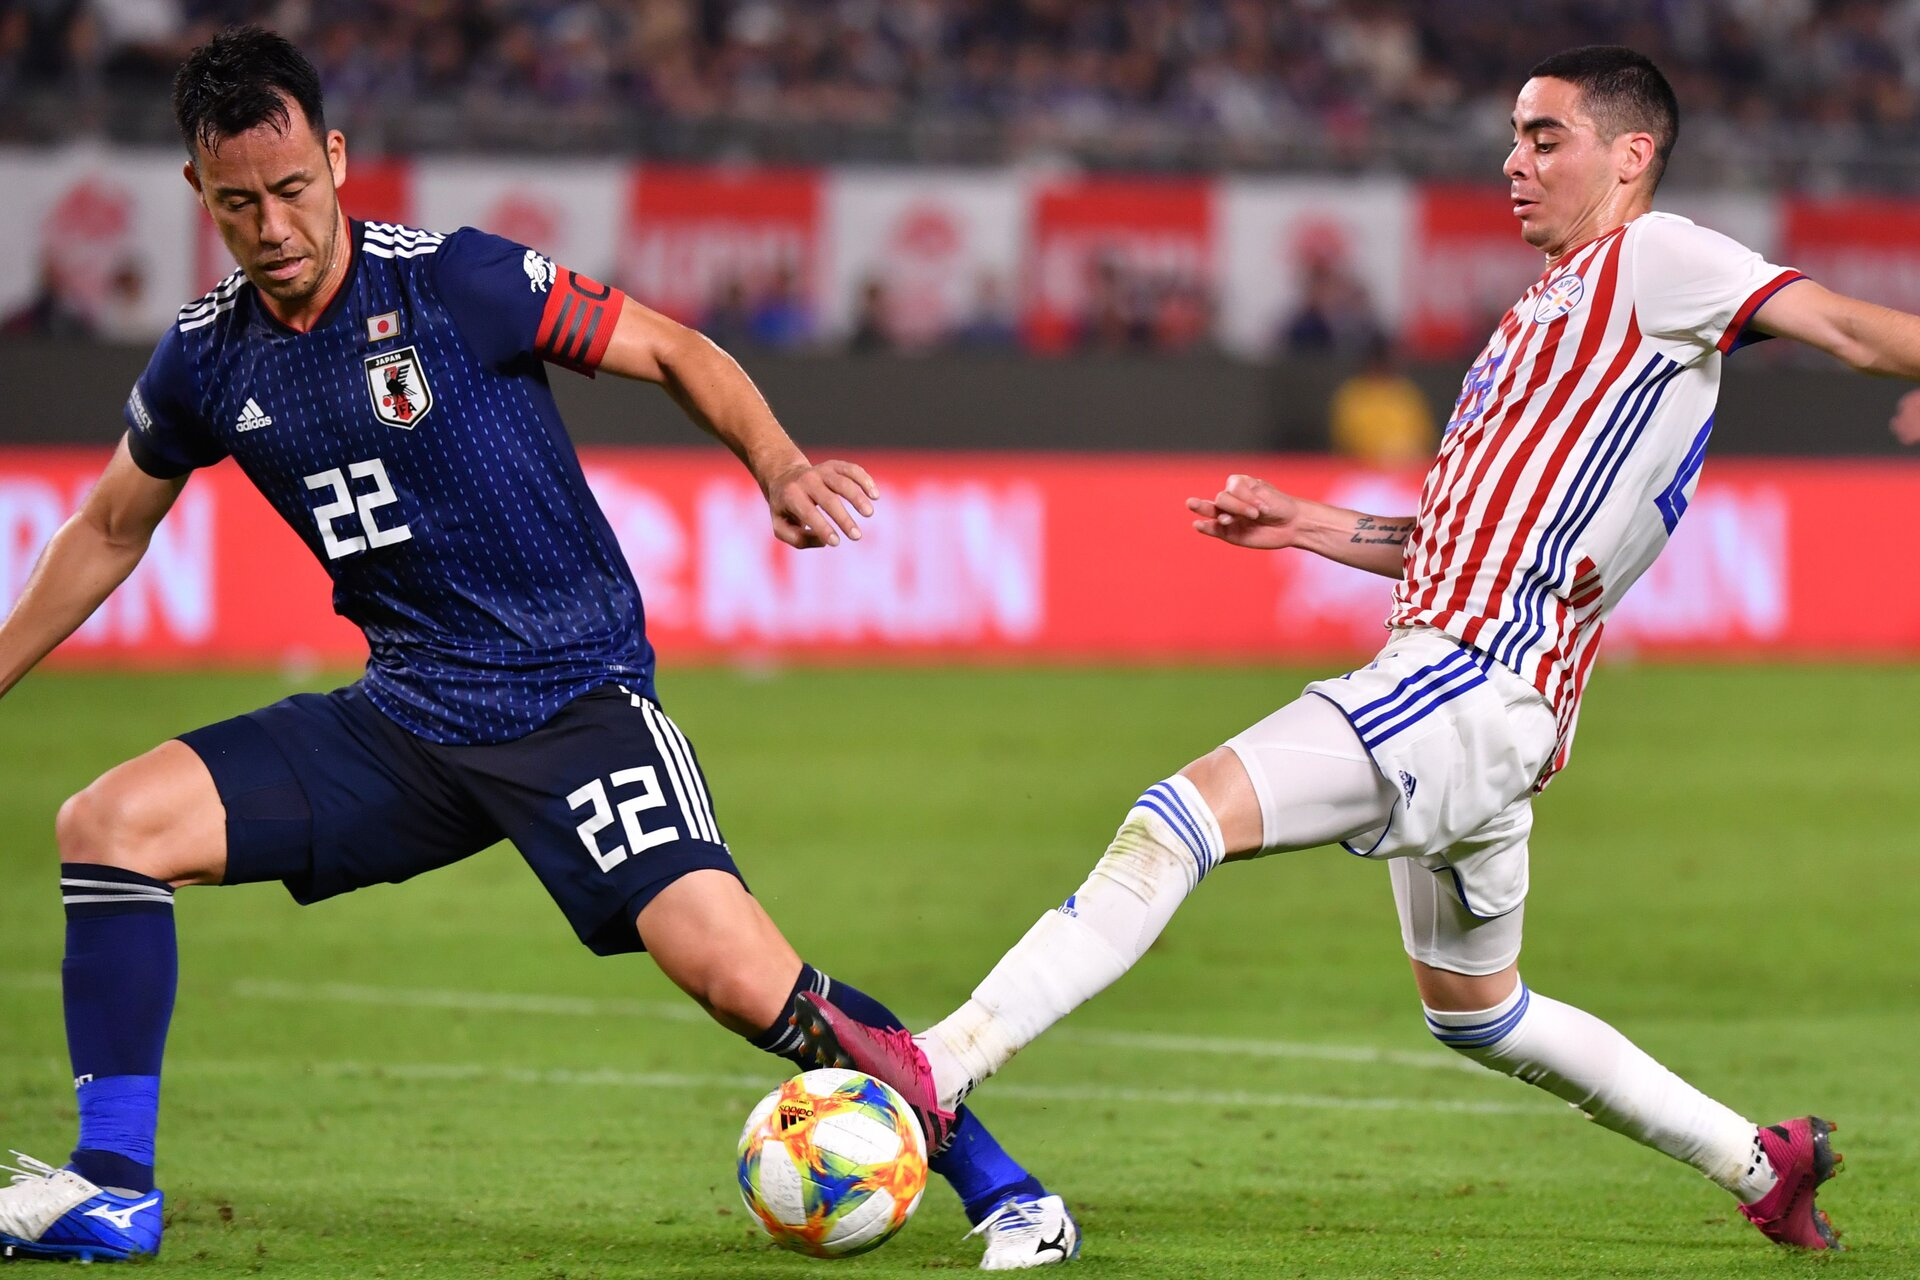 Paraguay's forward Miguel Almiron (R) fights for the ball with Japan's defender Maya Yoshida during the international friendly football match between Japan and Paraguay at the Kashima Soccer stadium in Kashima, Ibaraki prefecture on September 5, 2019. (Photo by Toshifumi KITAMURA / AFP)        (Photo credit should read TOSHIFUMI KITAMURA/AFP via Getty Images)